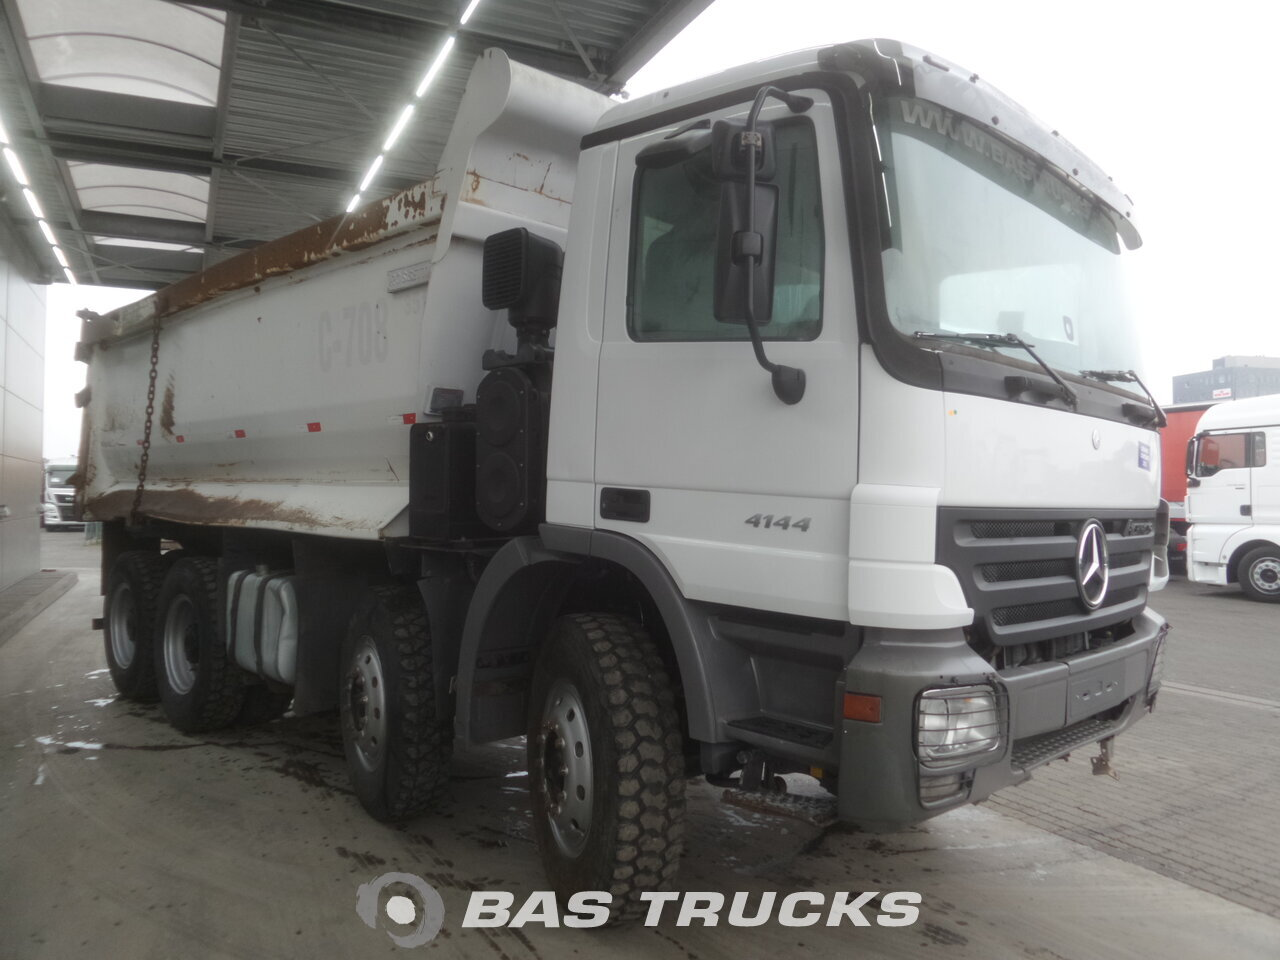 mercedes actros 4144 k lkw euro 3 38200 bas trucks. Black Bedroom Furniture Sets. Home Design Ideas